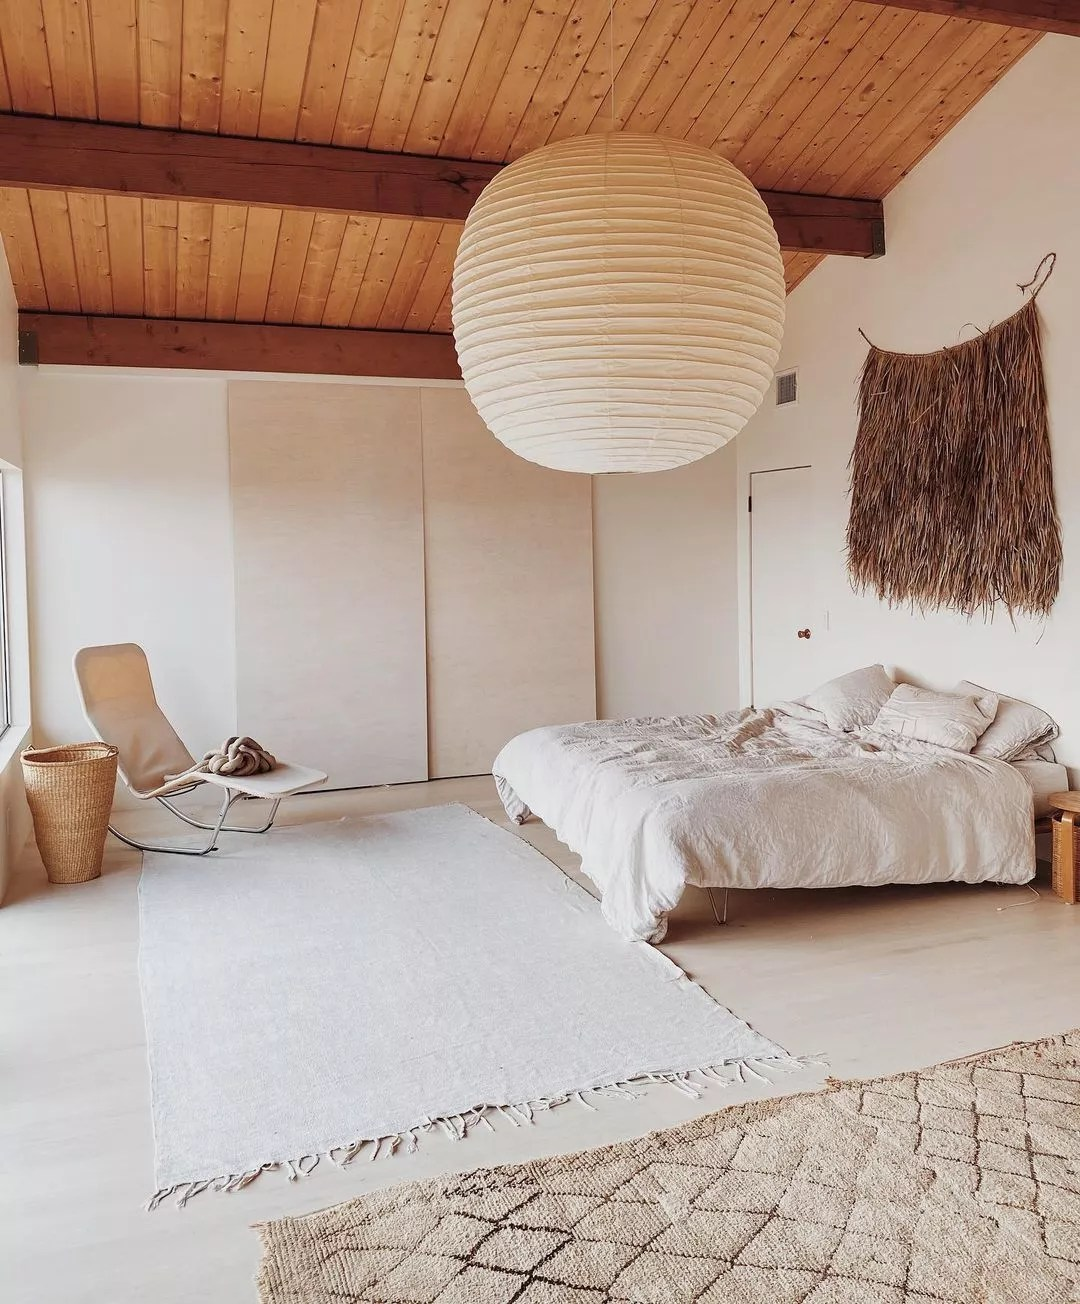 Airy, minimally designed bedroom with large paper lantern style light fixture. Photo by Instagram user @maraserene